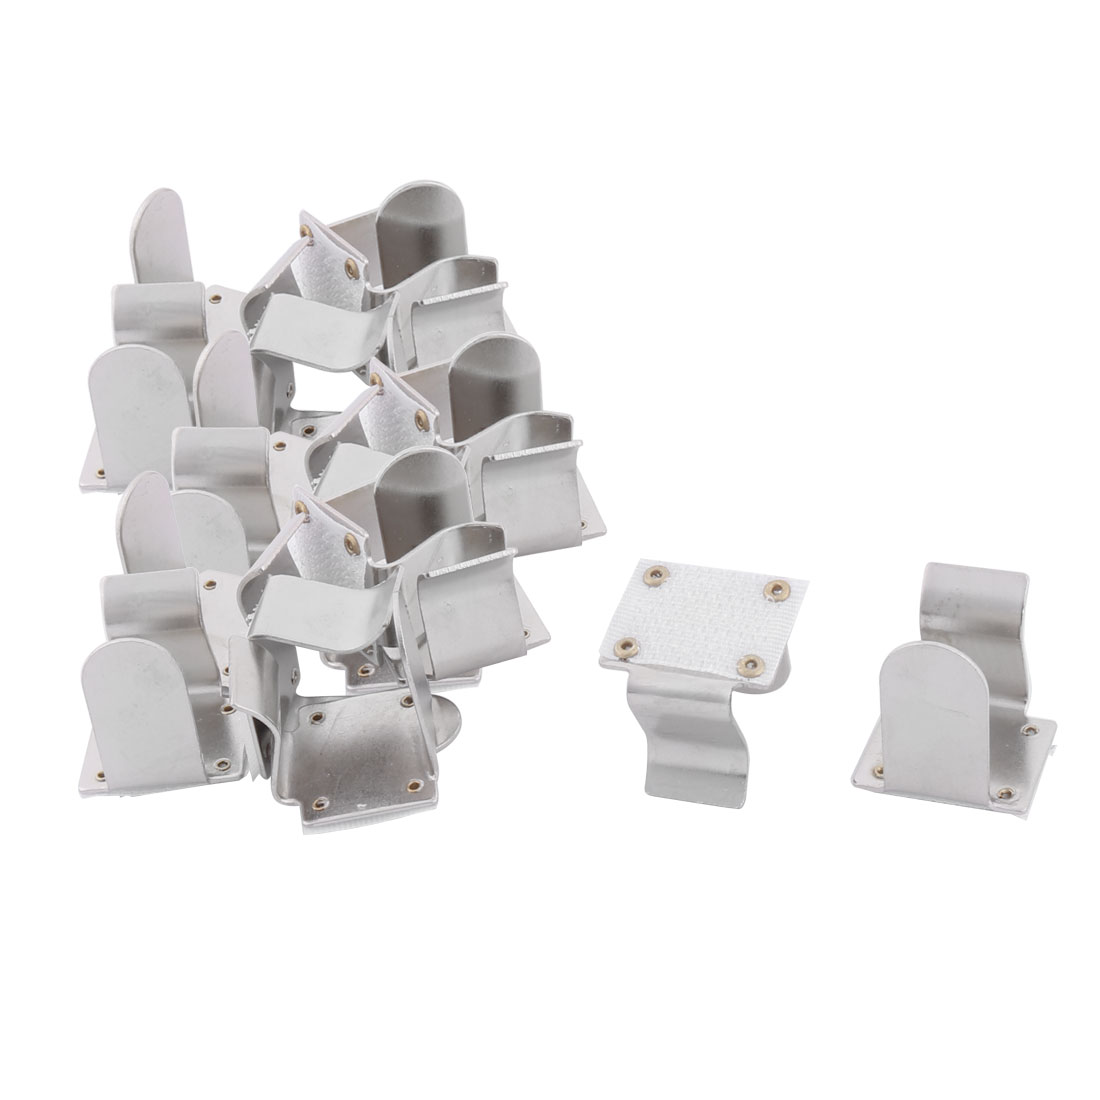 Family Hotel Metal Tablecloth Table Cover Clamp Clip Holder Silver Tone 20pcs